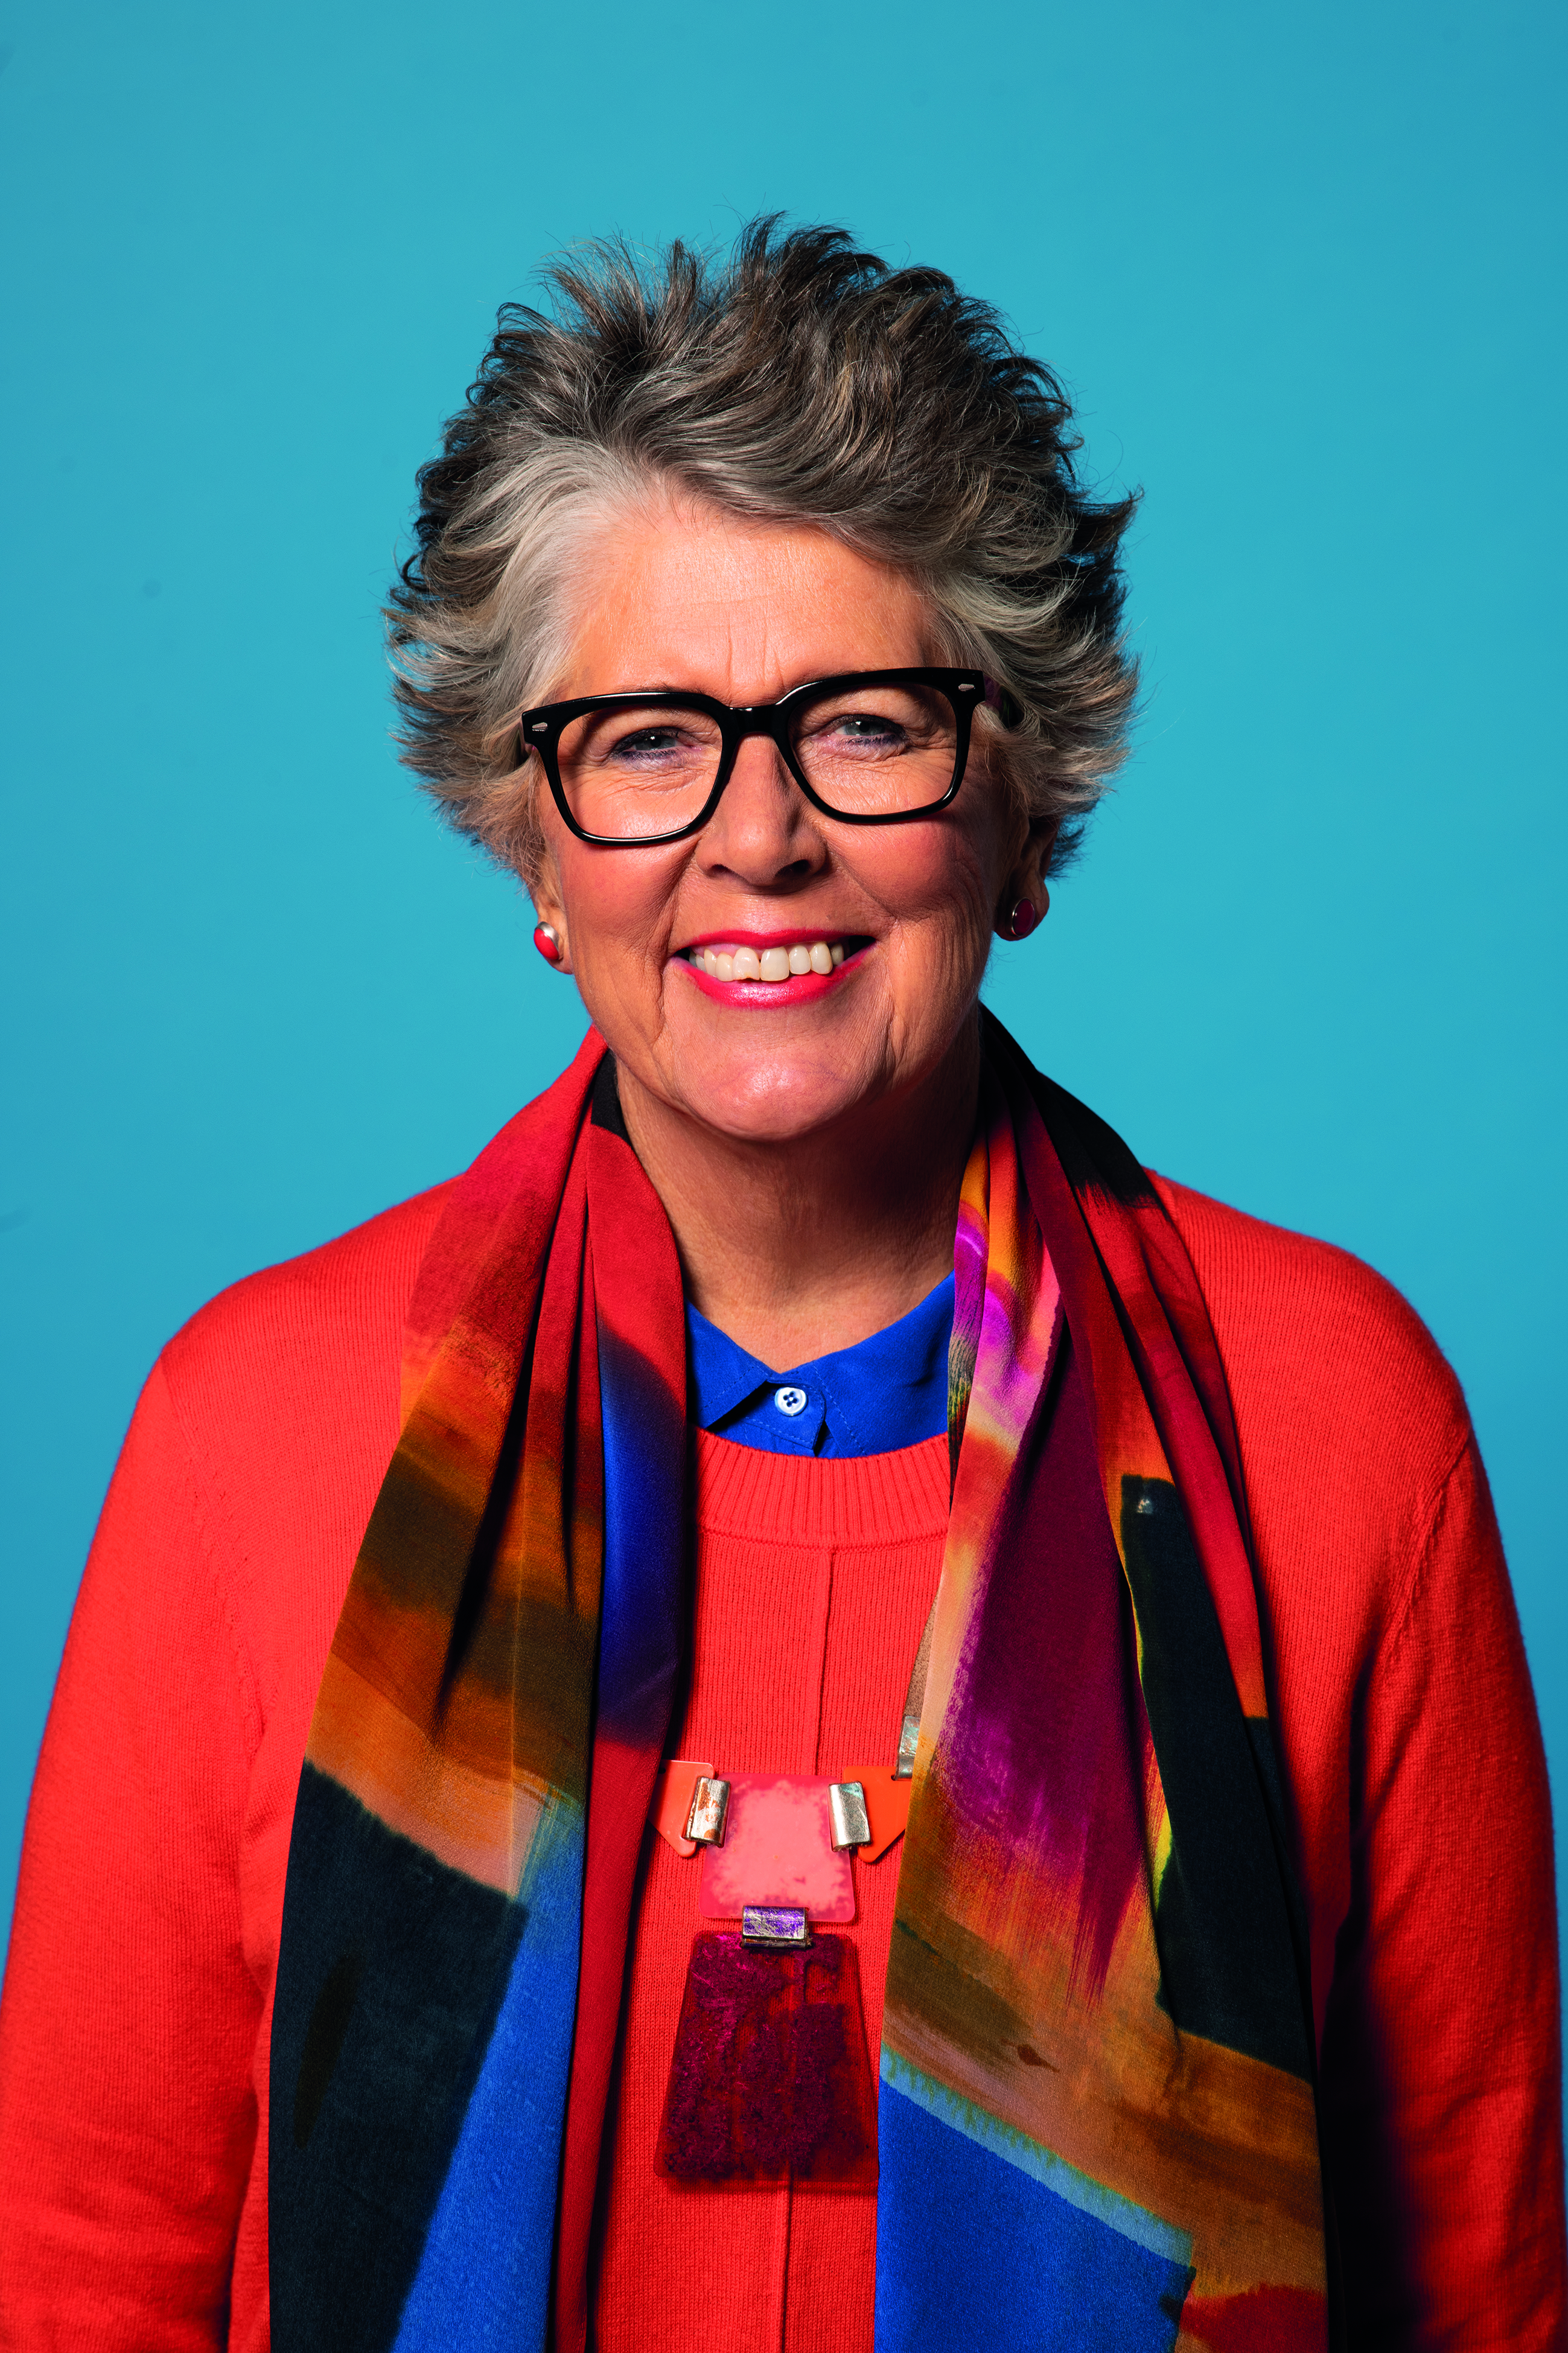 Above: As part of a series of blog articles, by journalist Angela Sarah West include an interview with culinary guru, Prue Leith. (Photo by Ronit Furst).